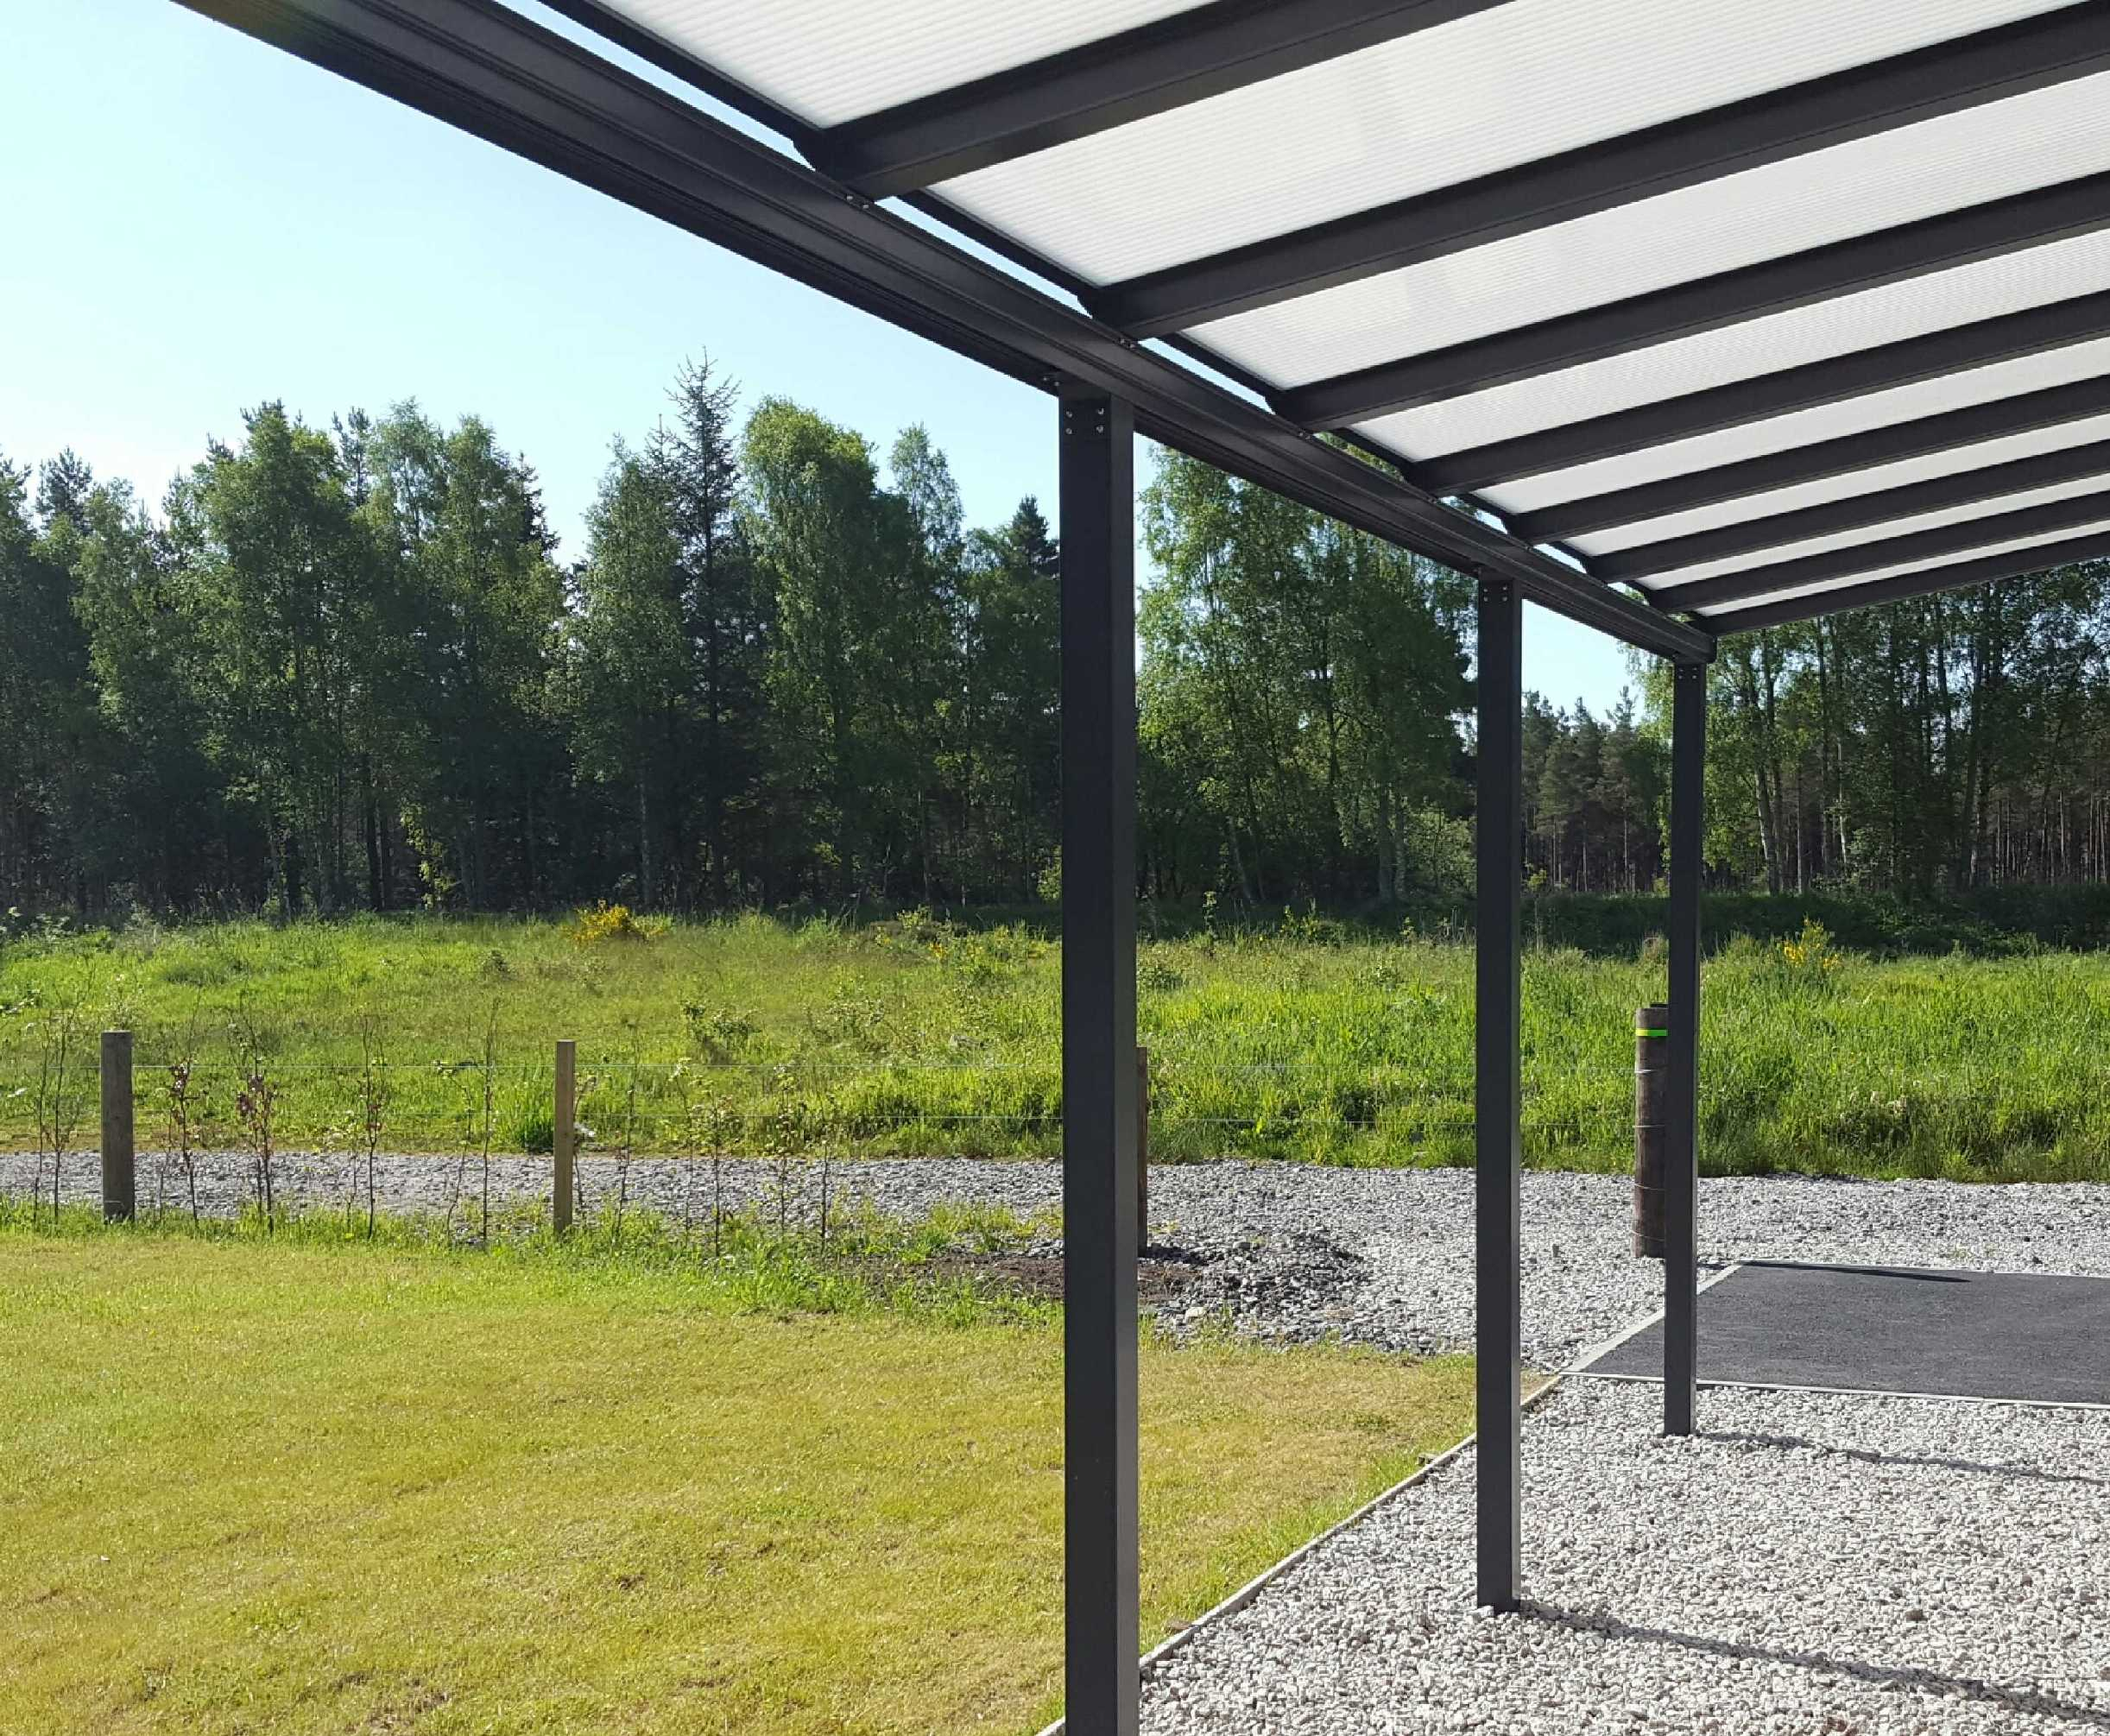 Omega Smart Lean-To Canopy, Anthracite Grey, 16mm Polycarbonate Glazing - 6.0m (W) x 1.5m (P), (3) Supporting Posts